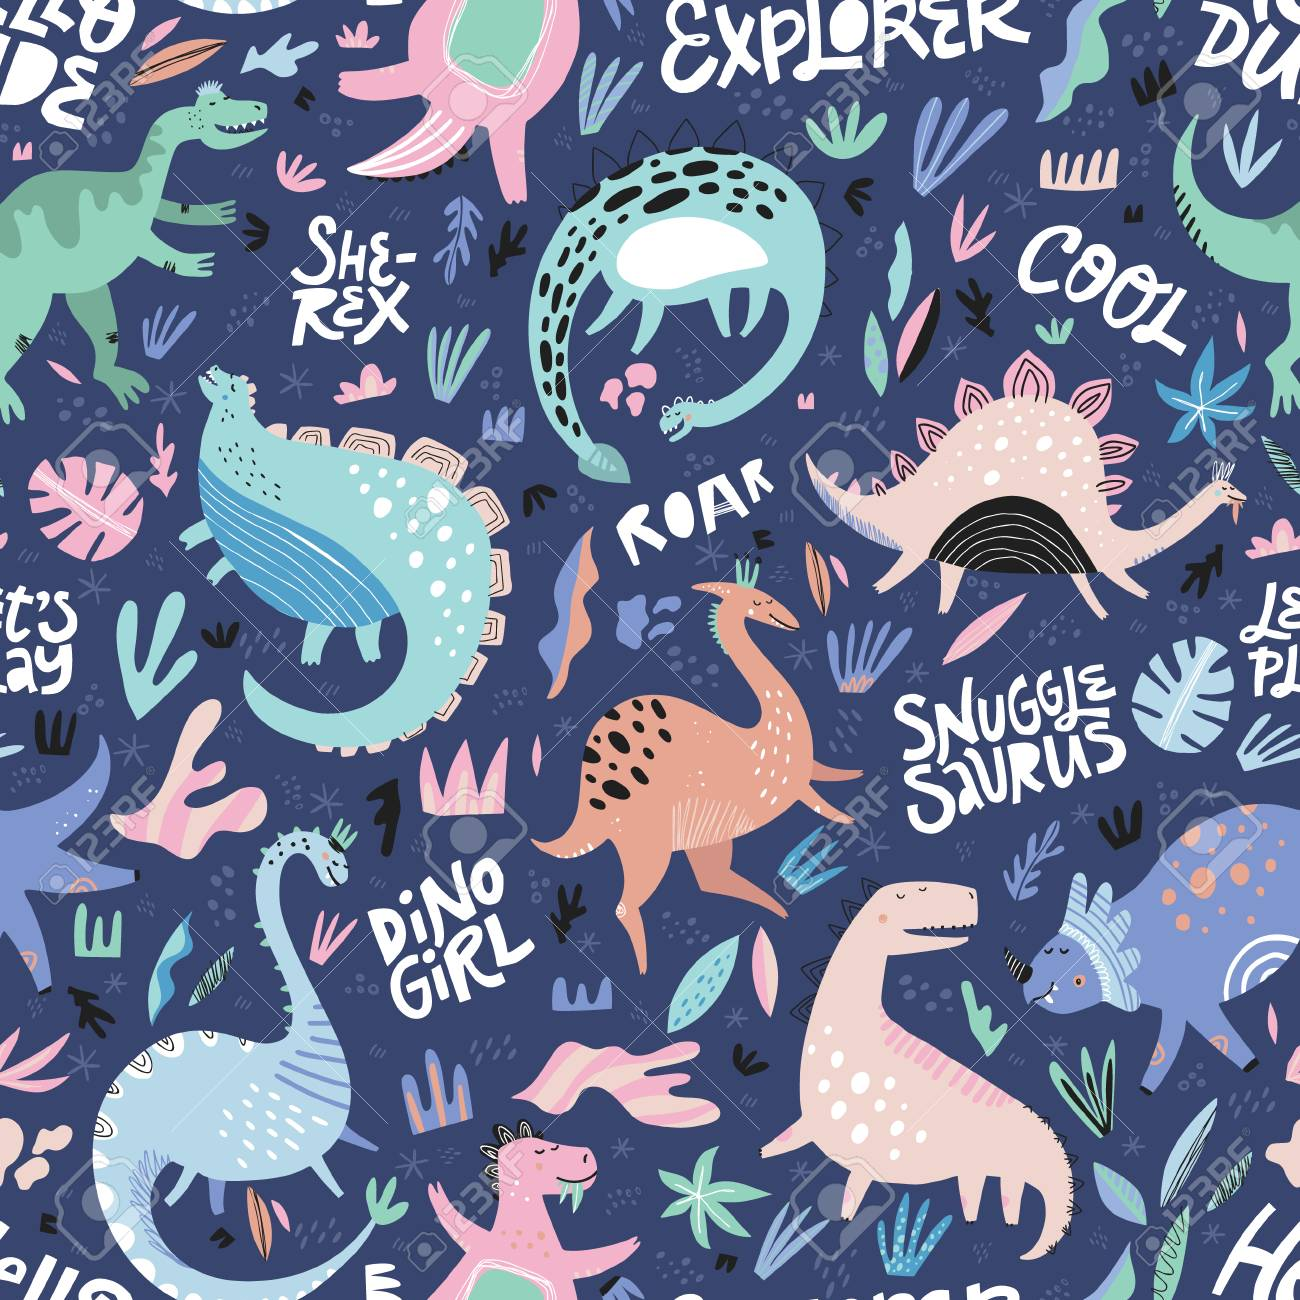 Cute dinosaurs hand drawn color vector seamless pattern. Dino characters cartoon texture with lettering. Scandinavian illustration. Sketch Jurassic reptiles. Wrapping paper, textile, background fill - 112590490